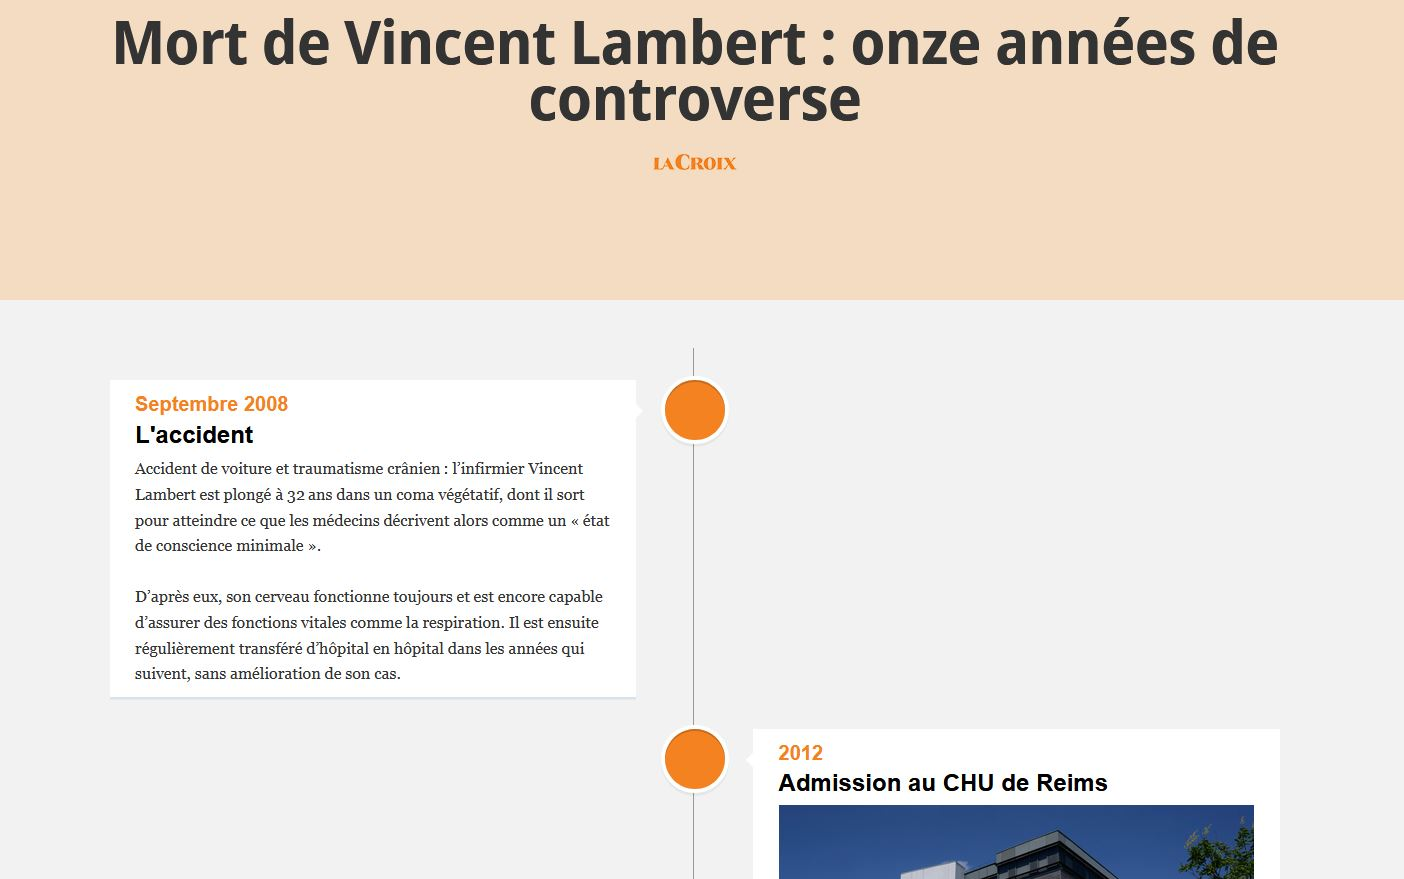 Chronologie sur l'affaire Vincent Lambert